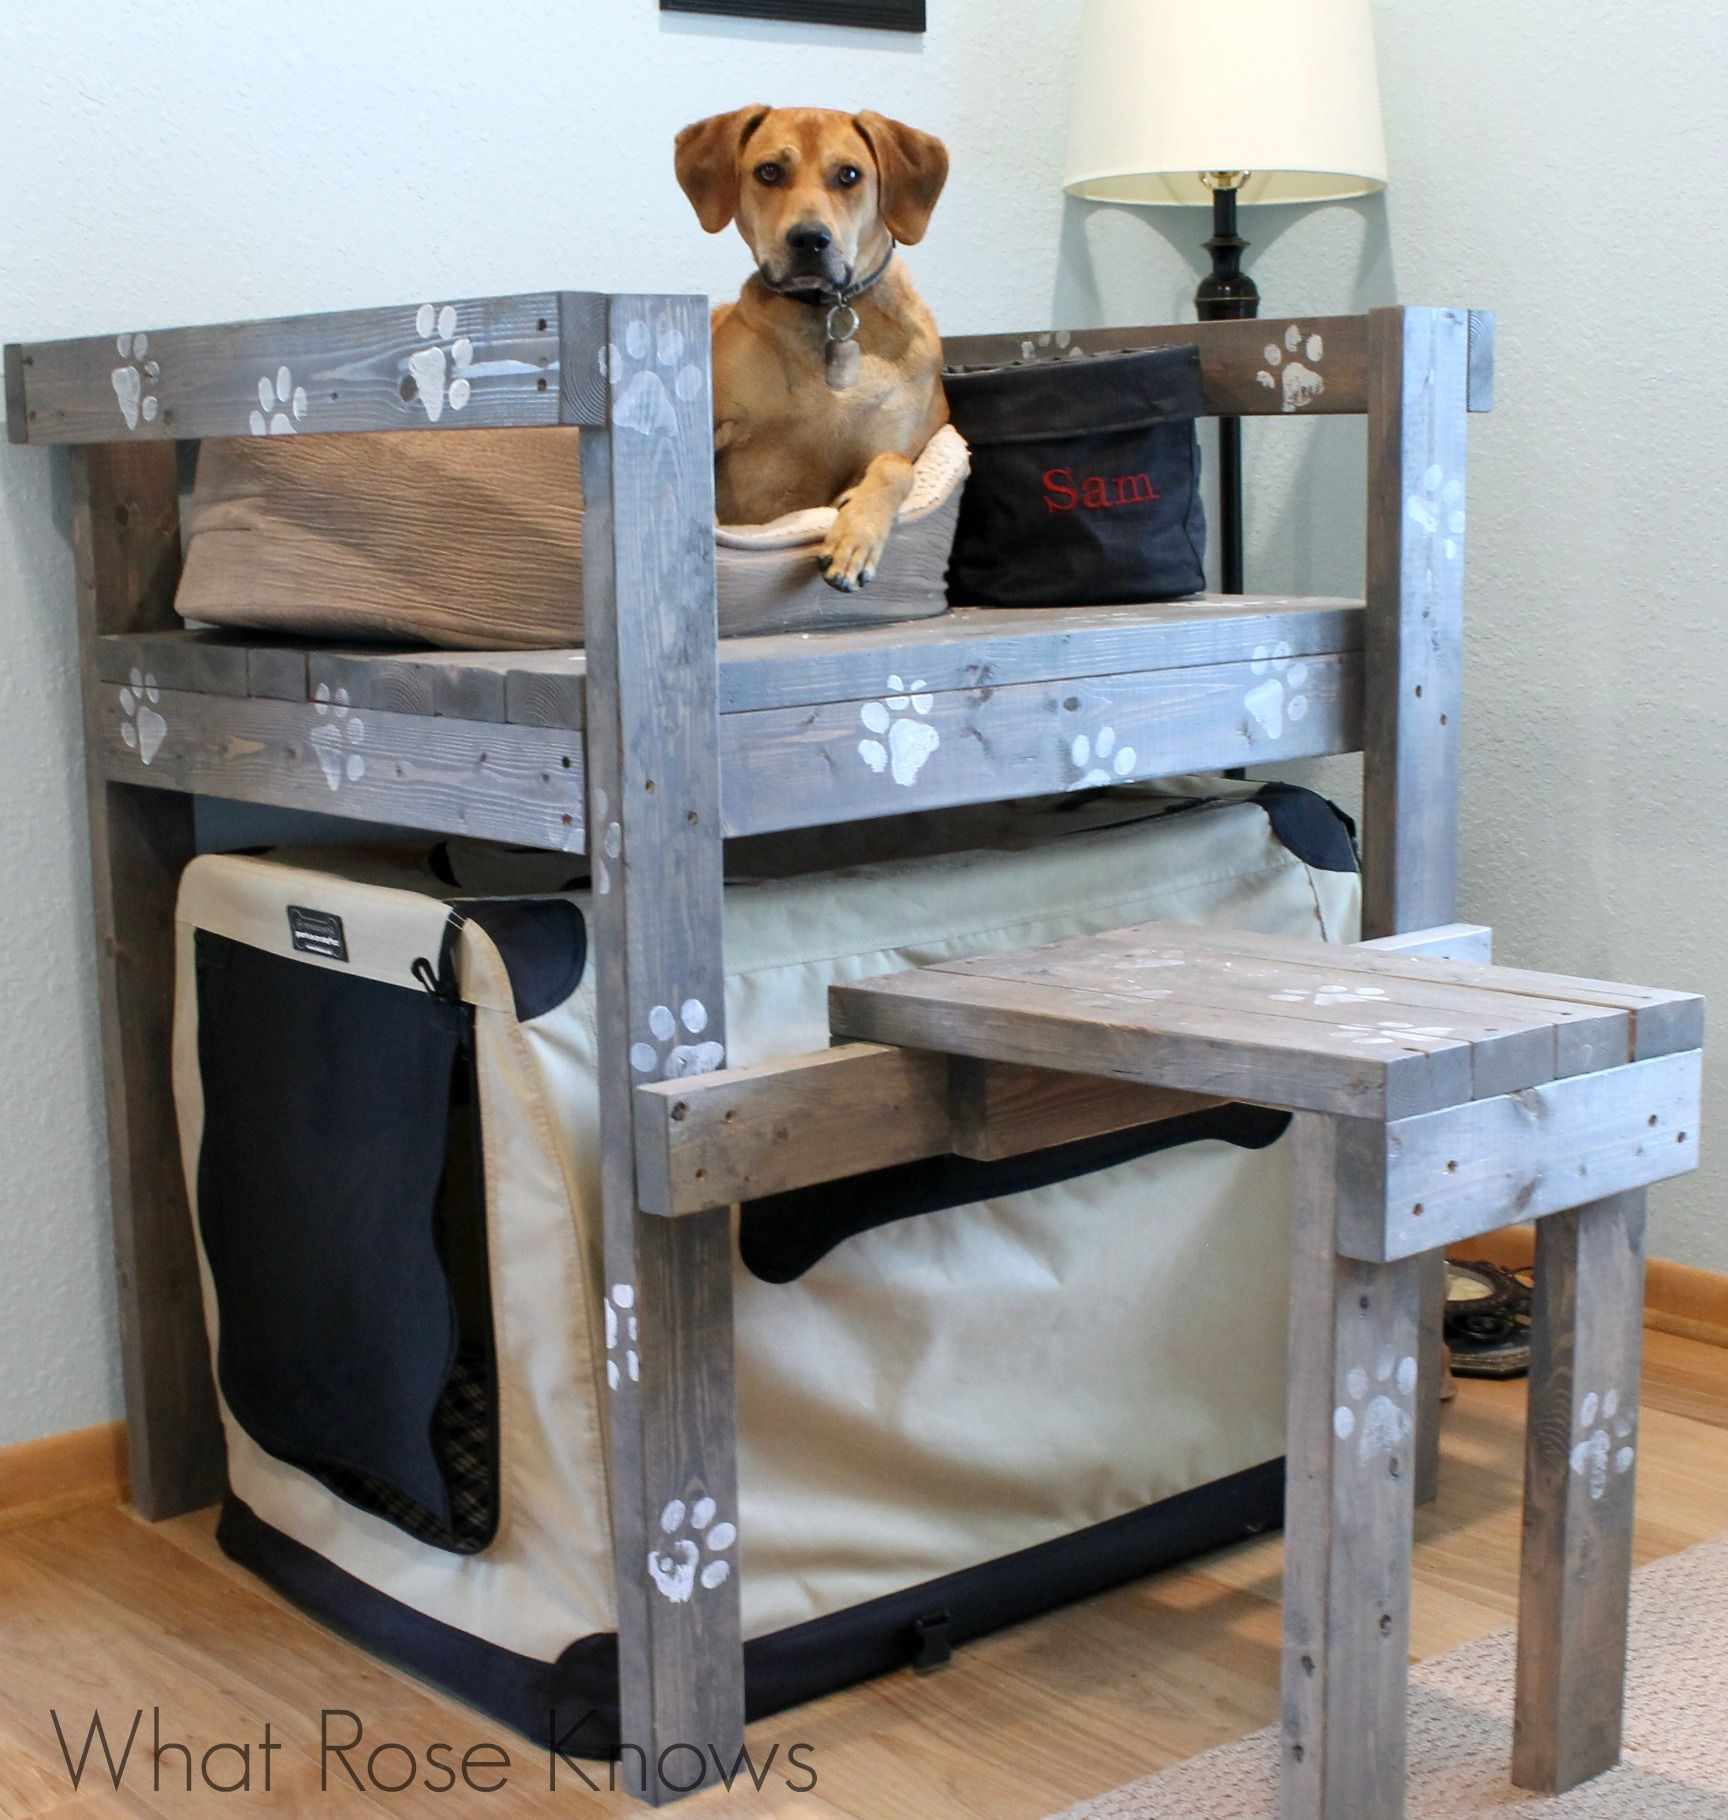 Dog Bunk Bed Idea For Saving Space And Creating An Area For Your Dog